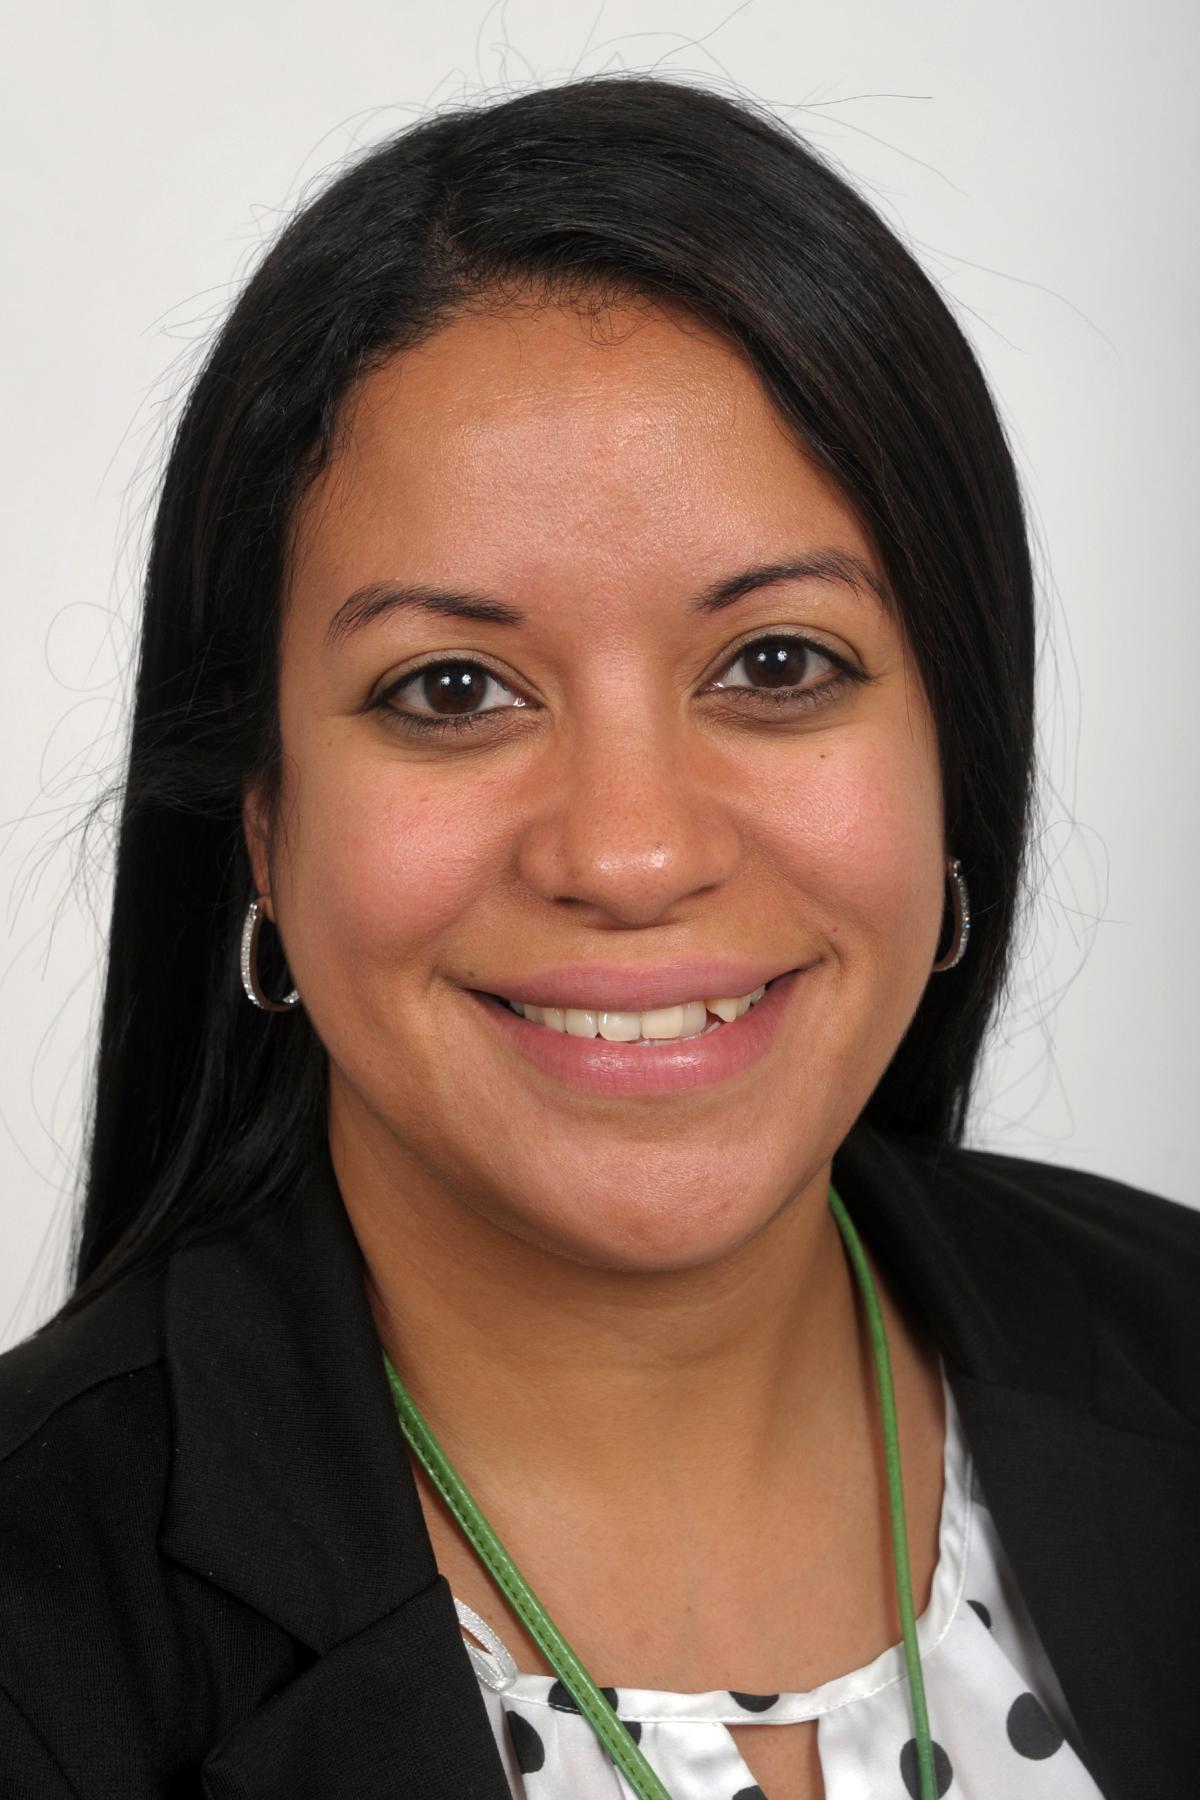 Keila Torres Ocasio: Ready for whatever the job has in store